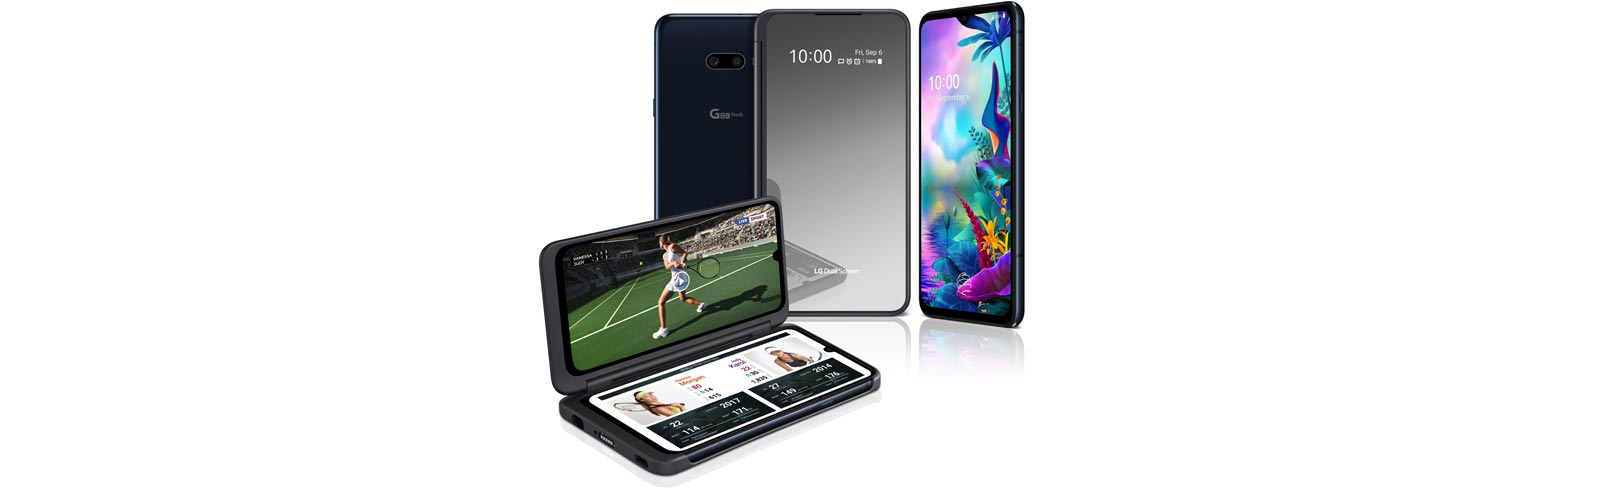 LG unveils the LG G8X ThinQ and the LG V50S ThinQ 5G at IFA 2019